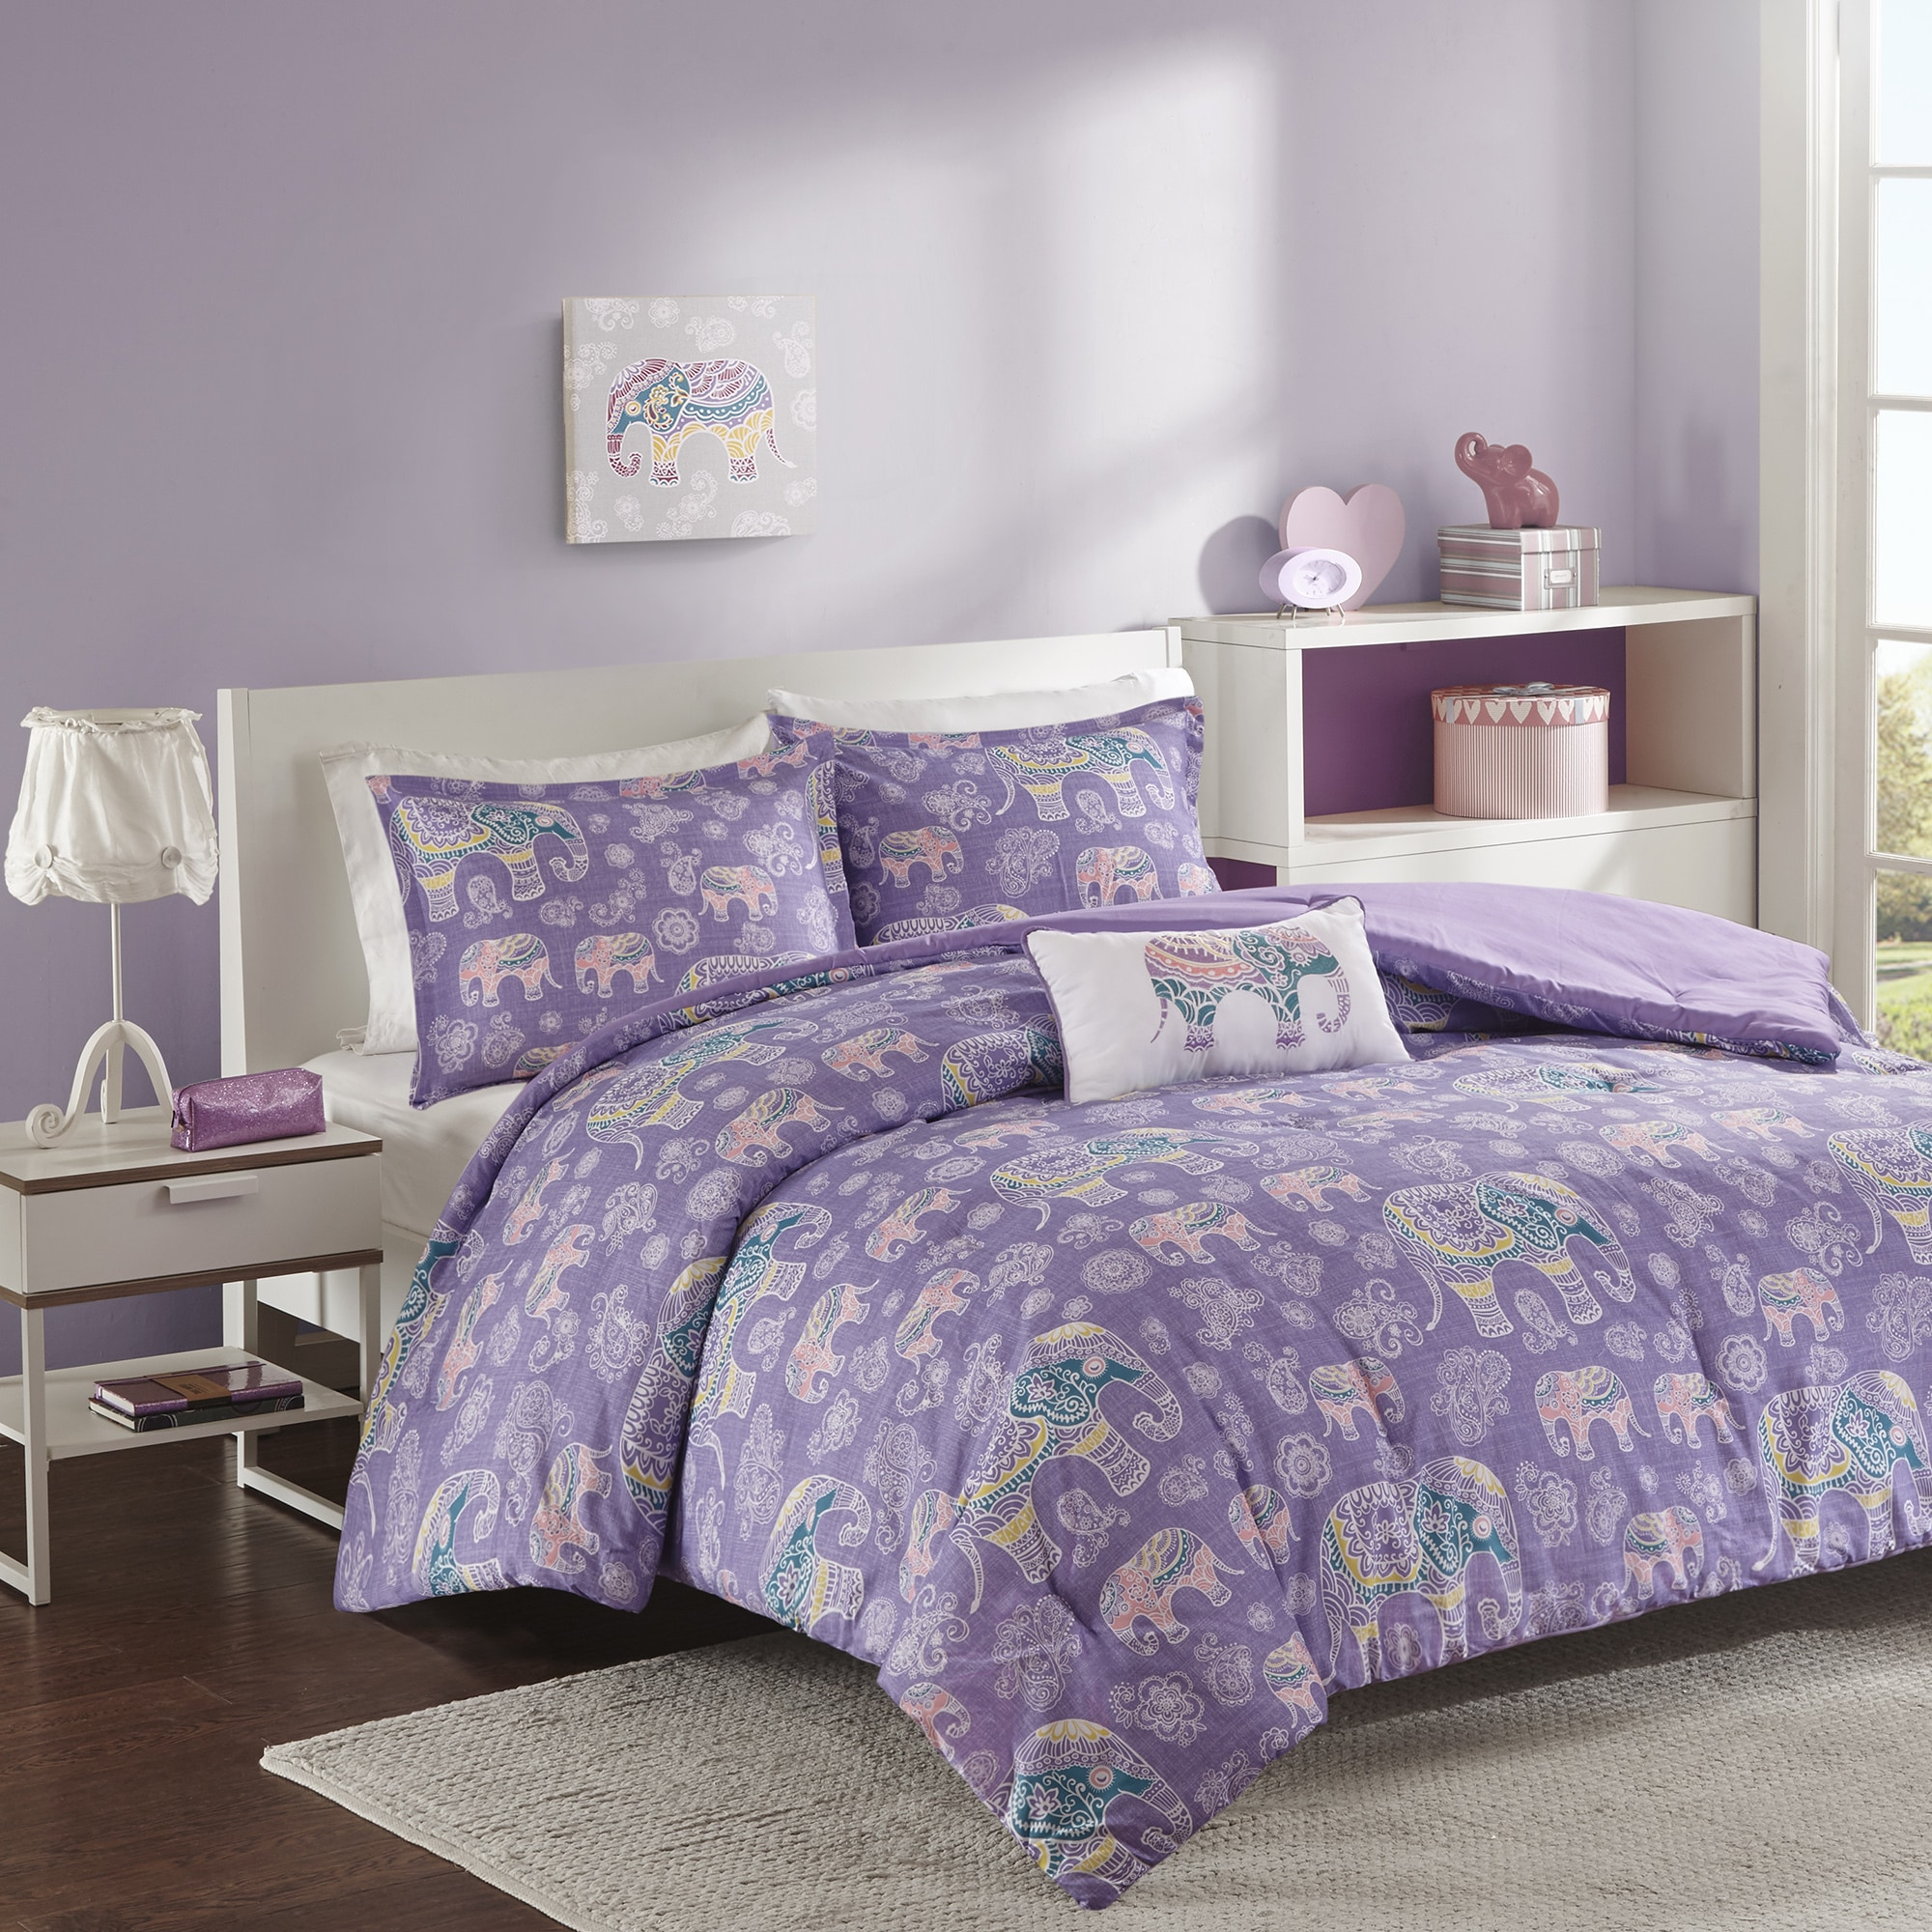 comforter aetherair co sets asli sheets purple